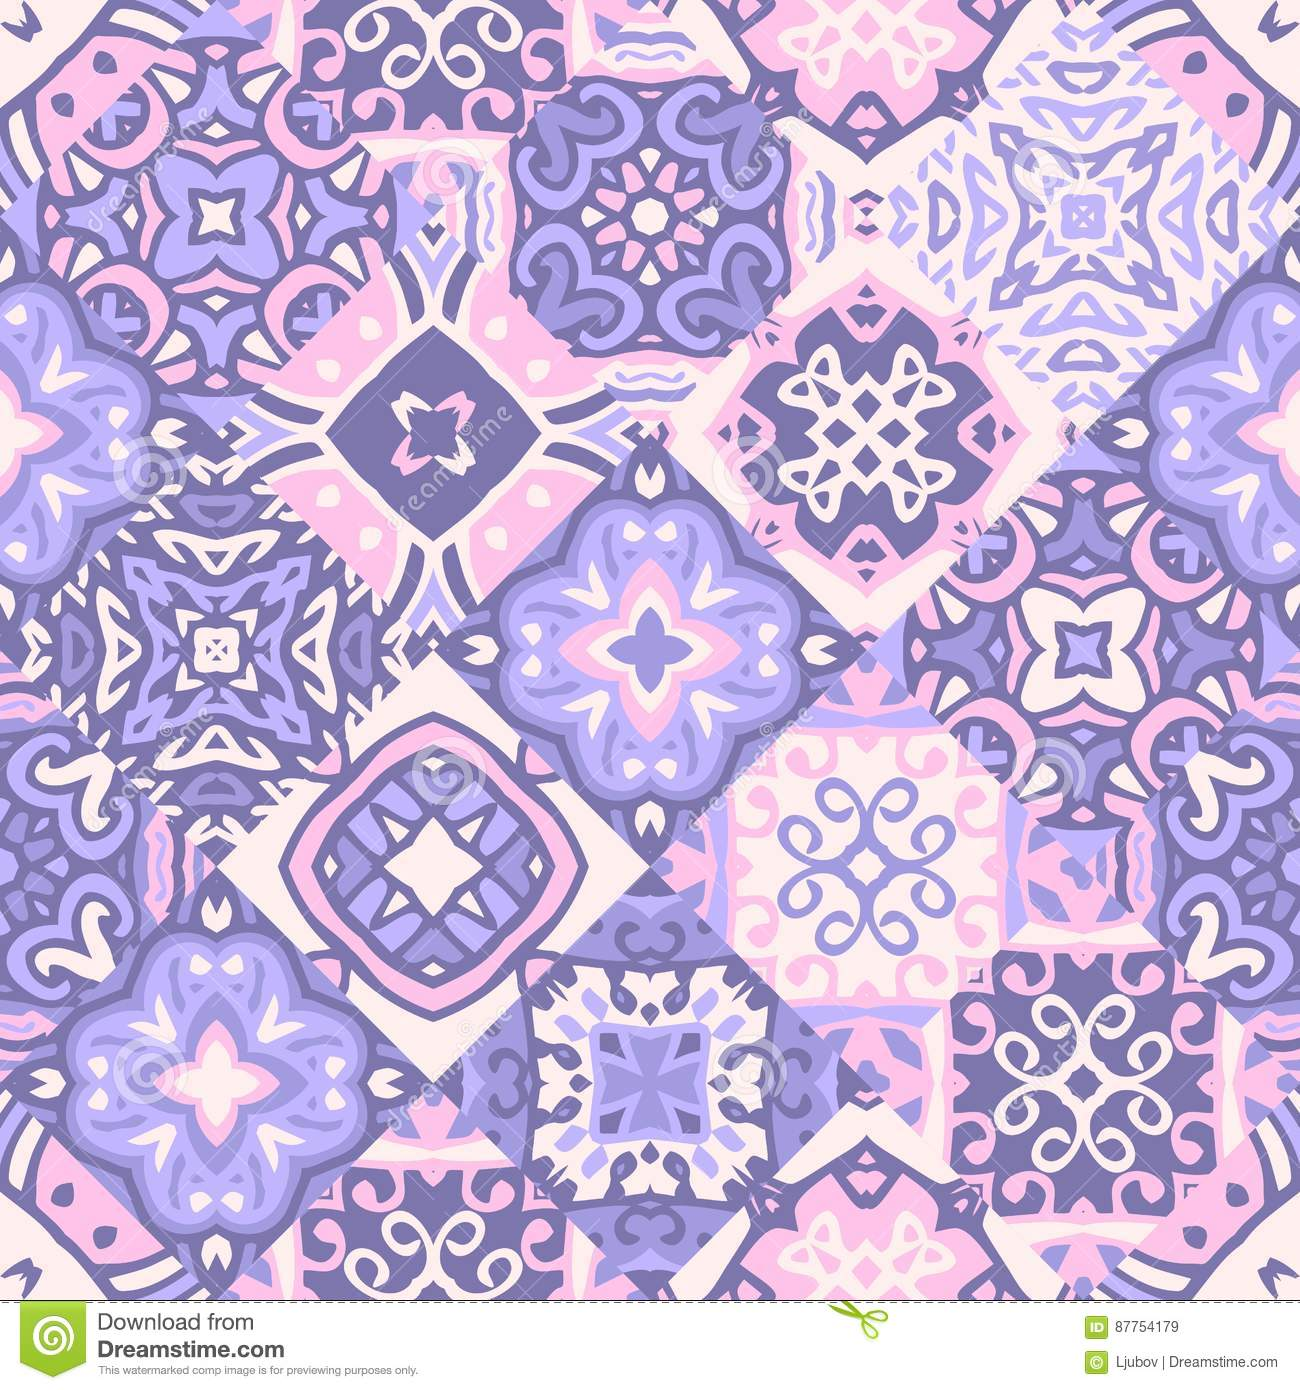 Vintage seamless patchwork pattern. Ceramic tiles with decorative ornament